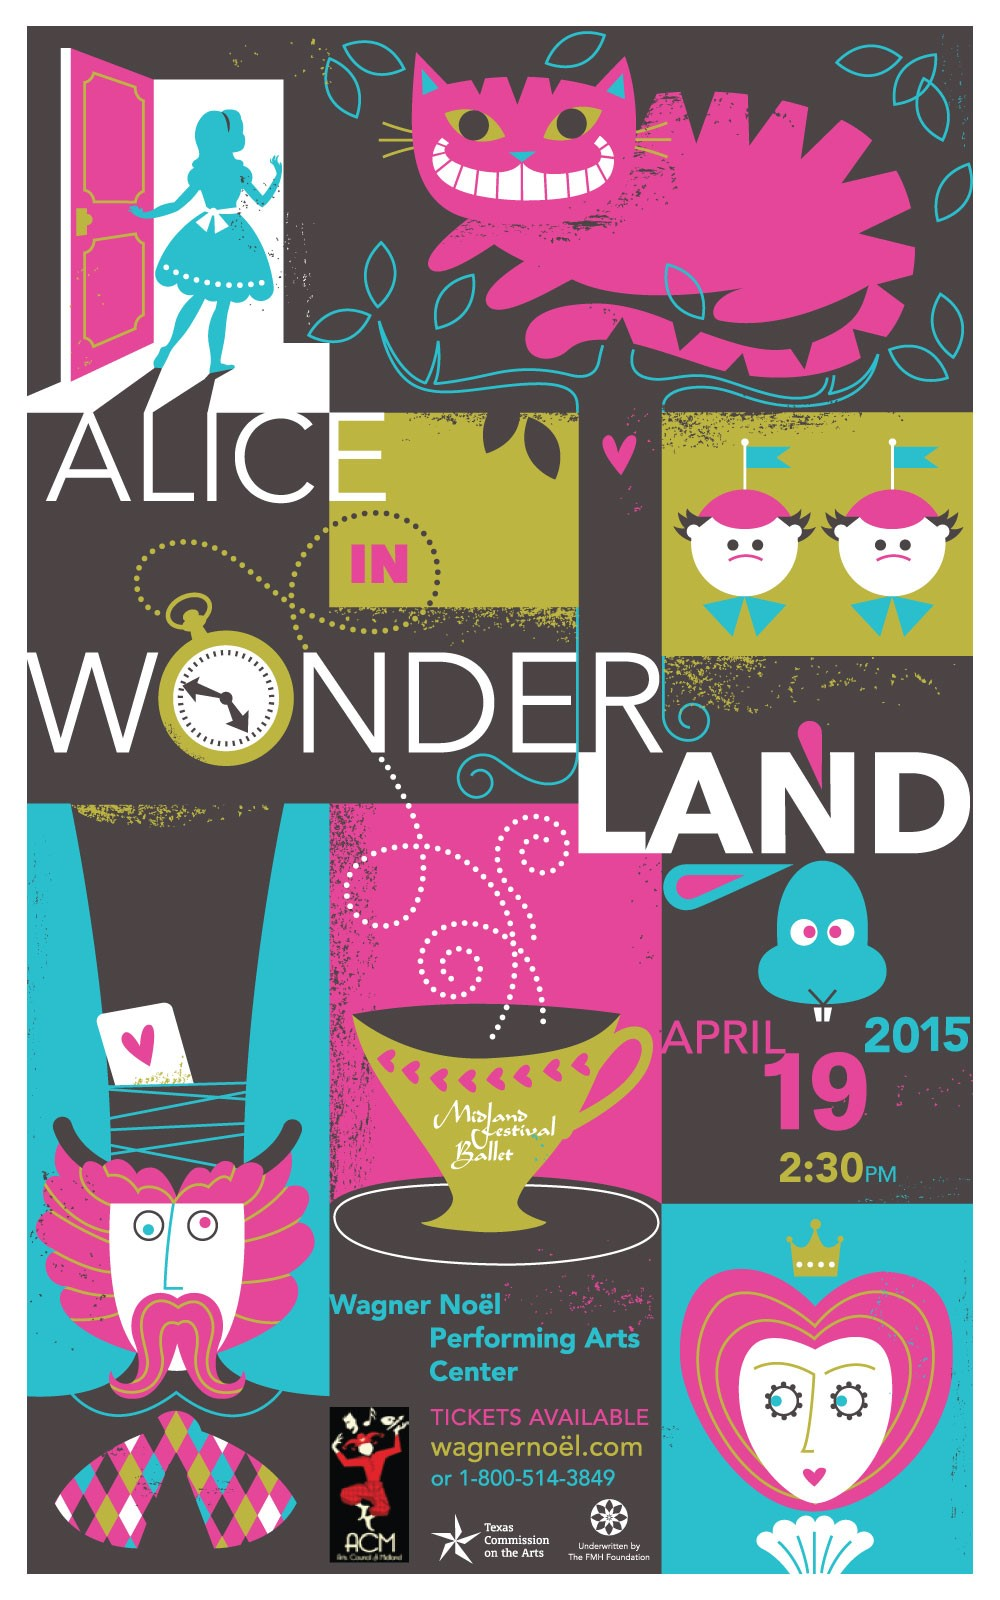 Alice in Wonderland, April 2015